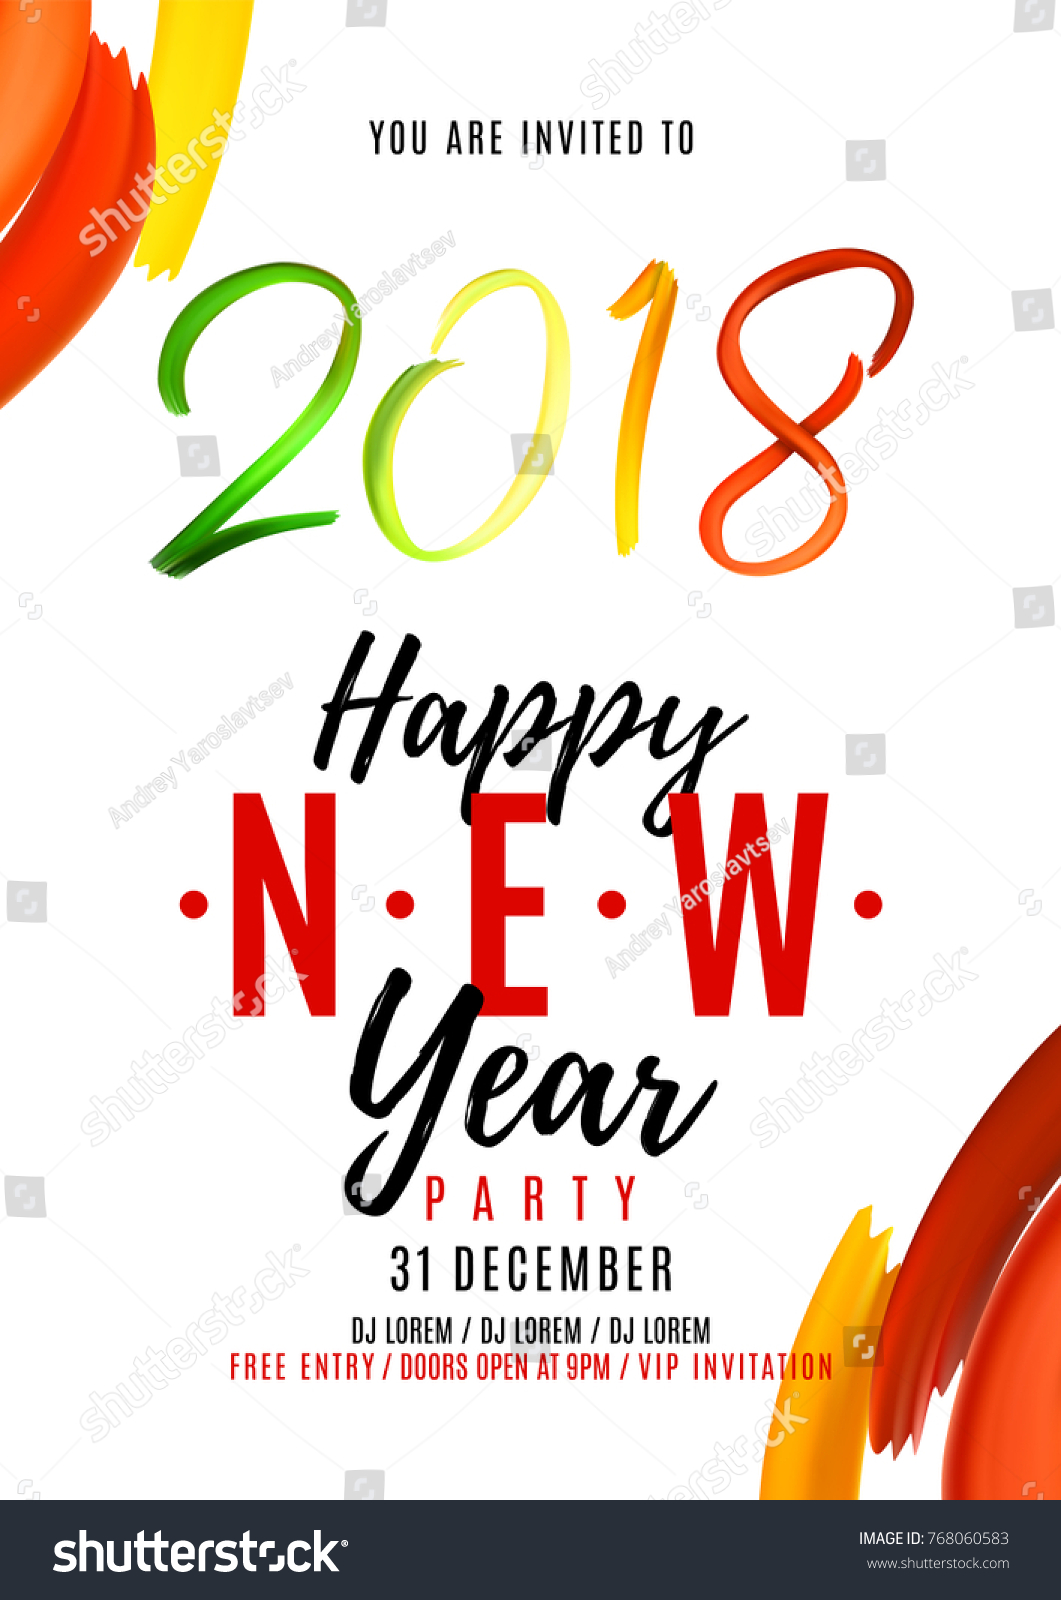 2018 New Year Party Flyer Hand Stock Vector (Royalty Free) 768060583 ...